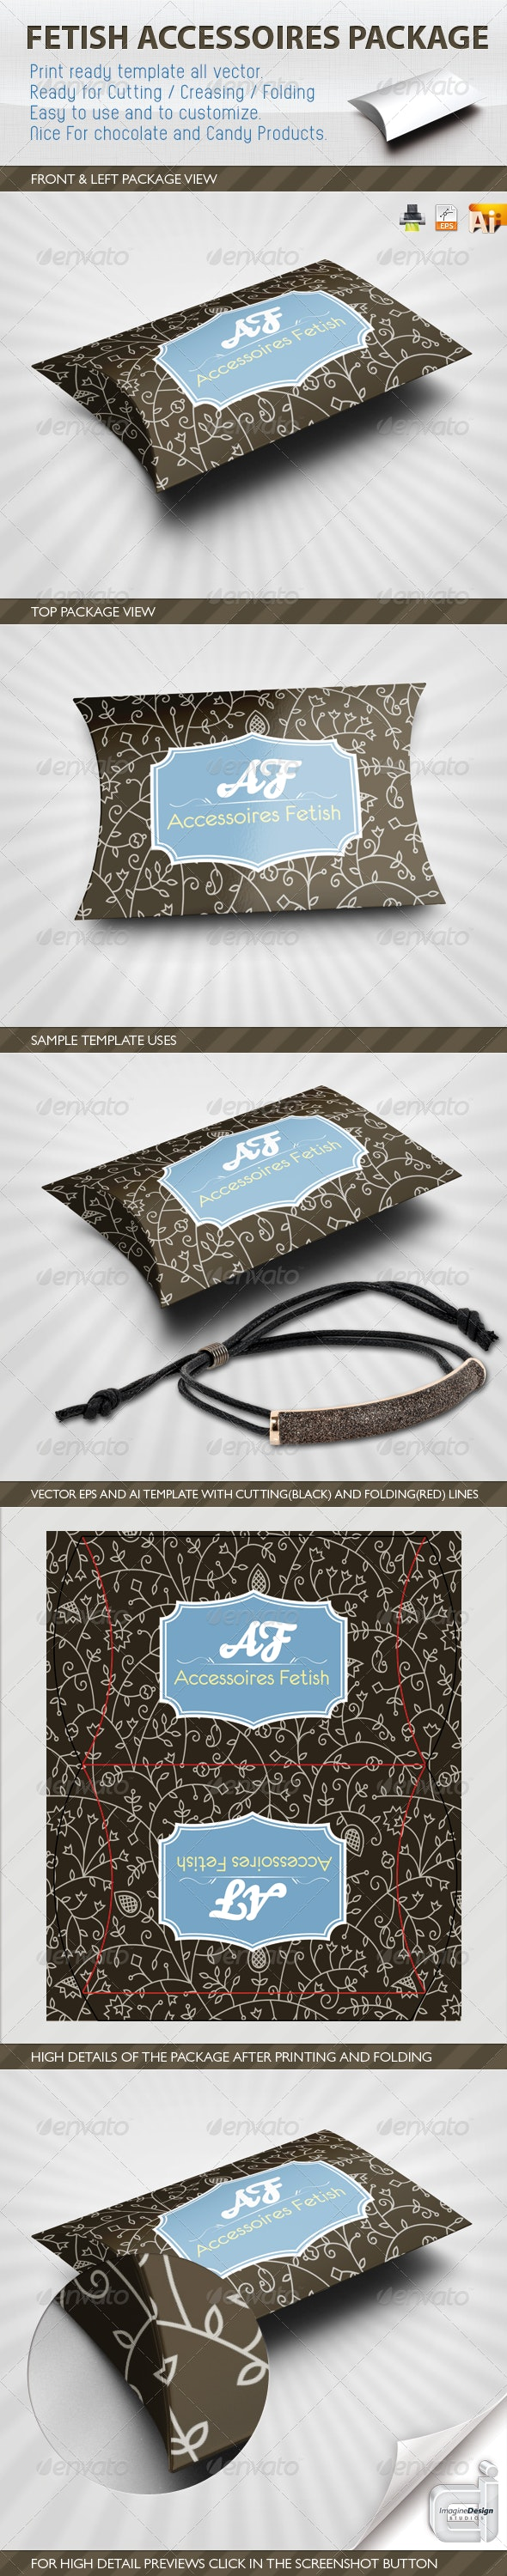 Accessory Fetish Package Template